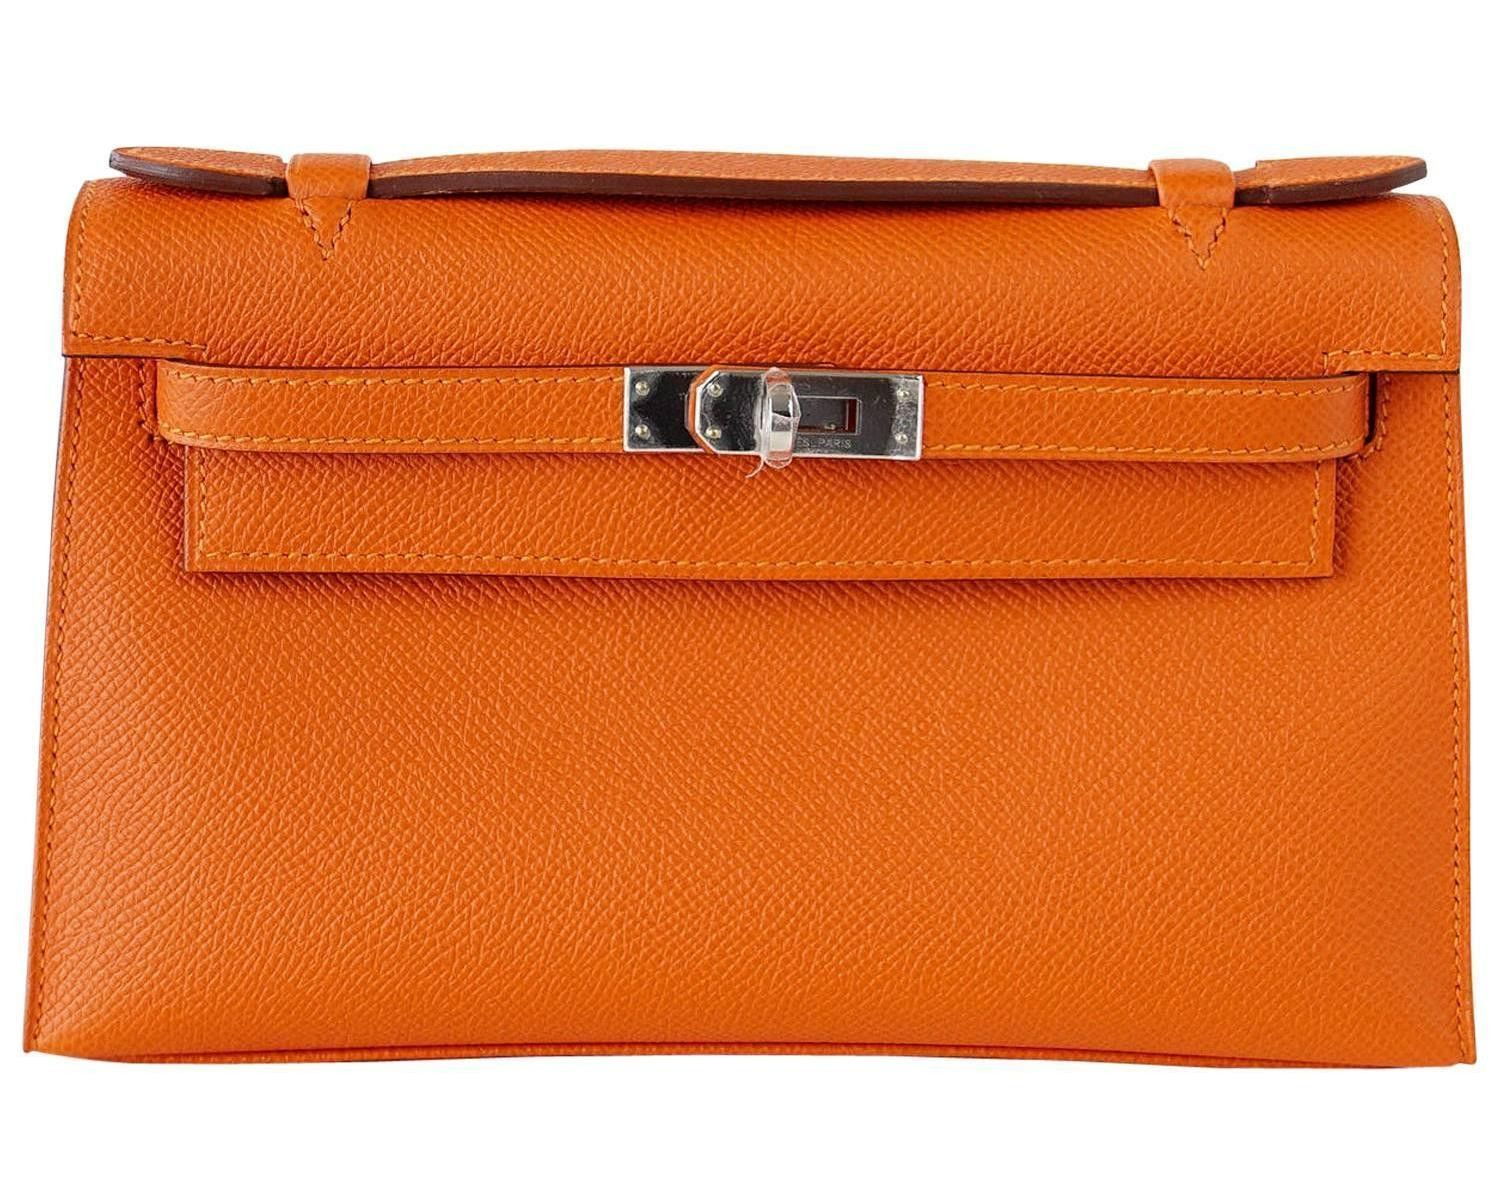 765a77ab795b Hermes Kelly Pochette Feu Orange Epsom Palladium Hardware